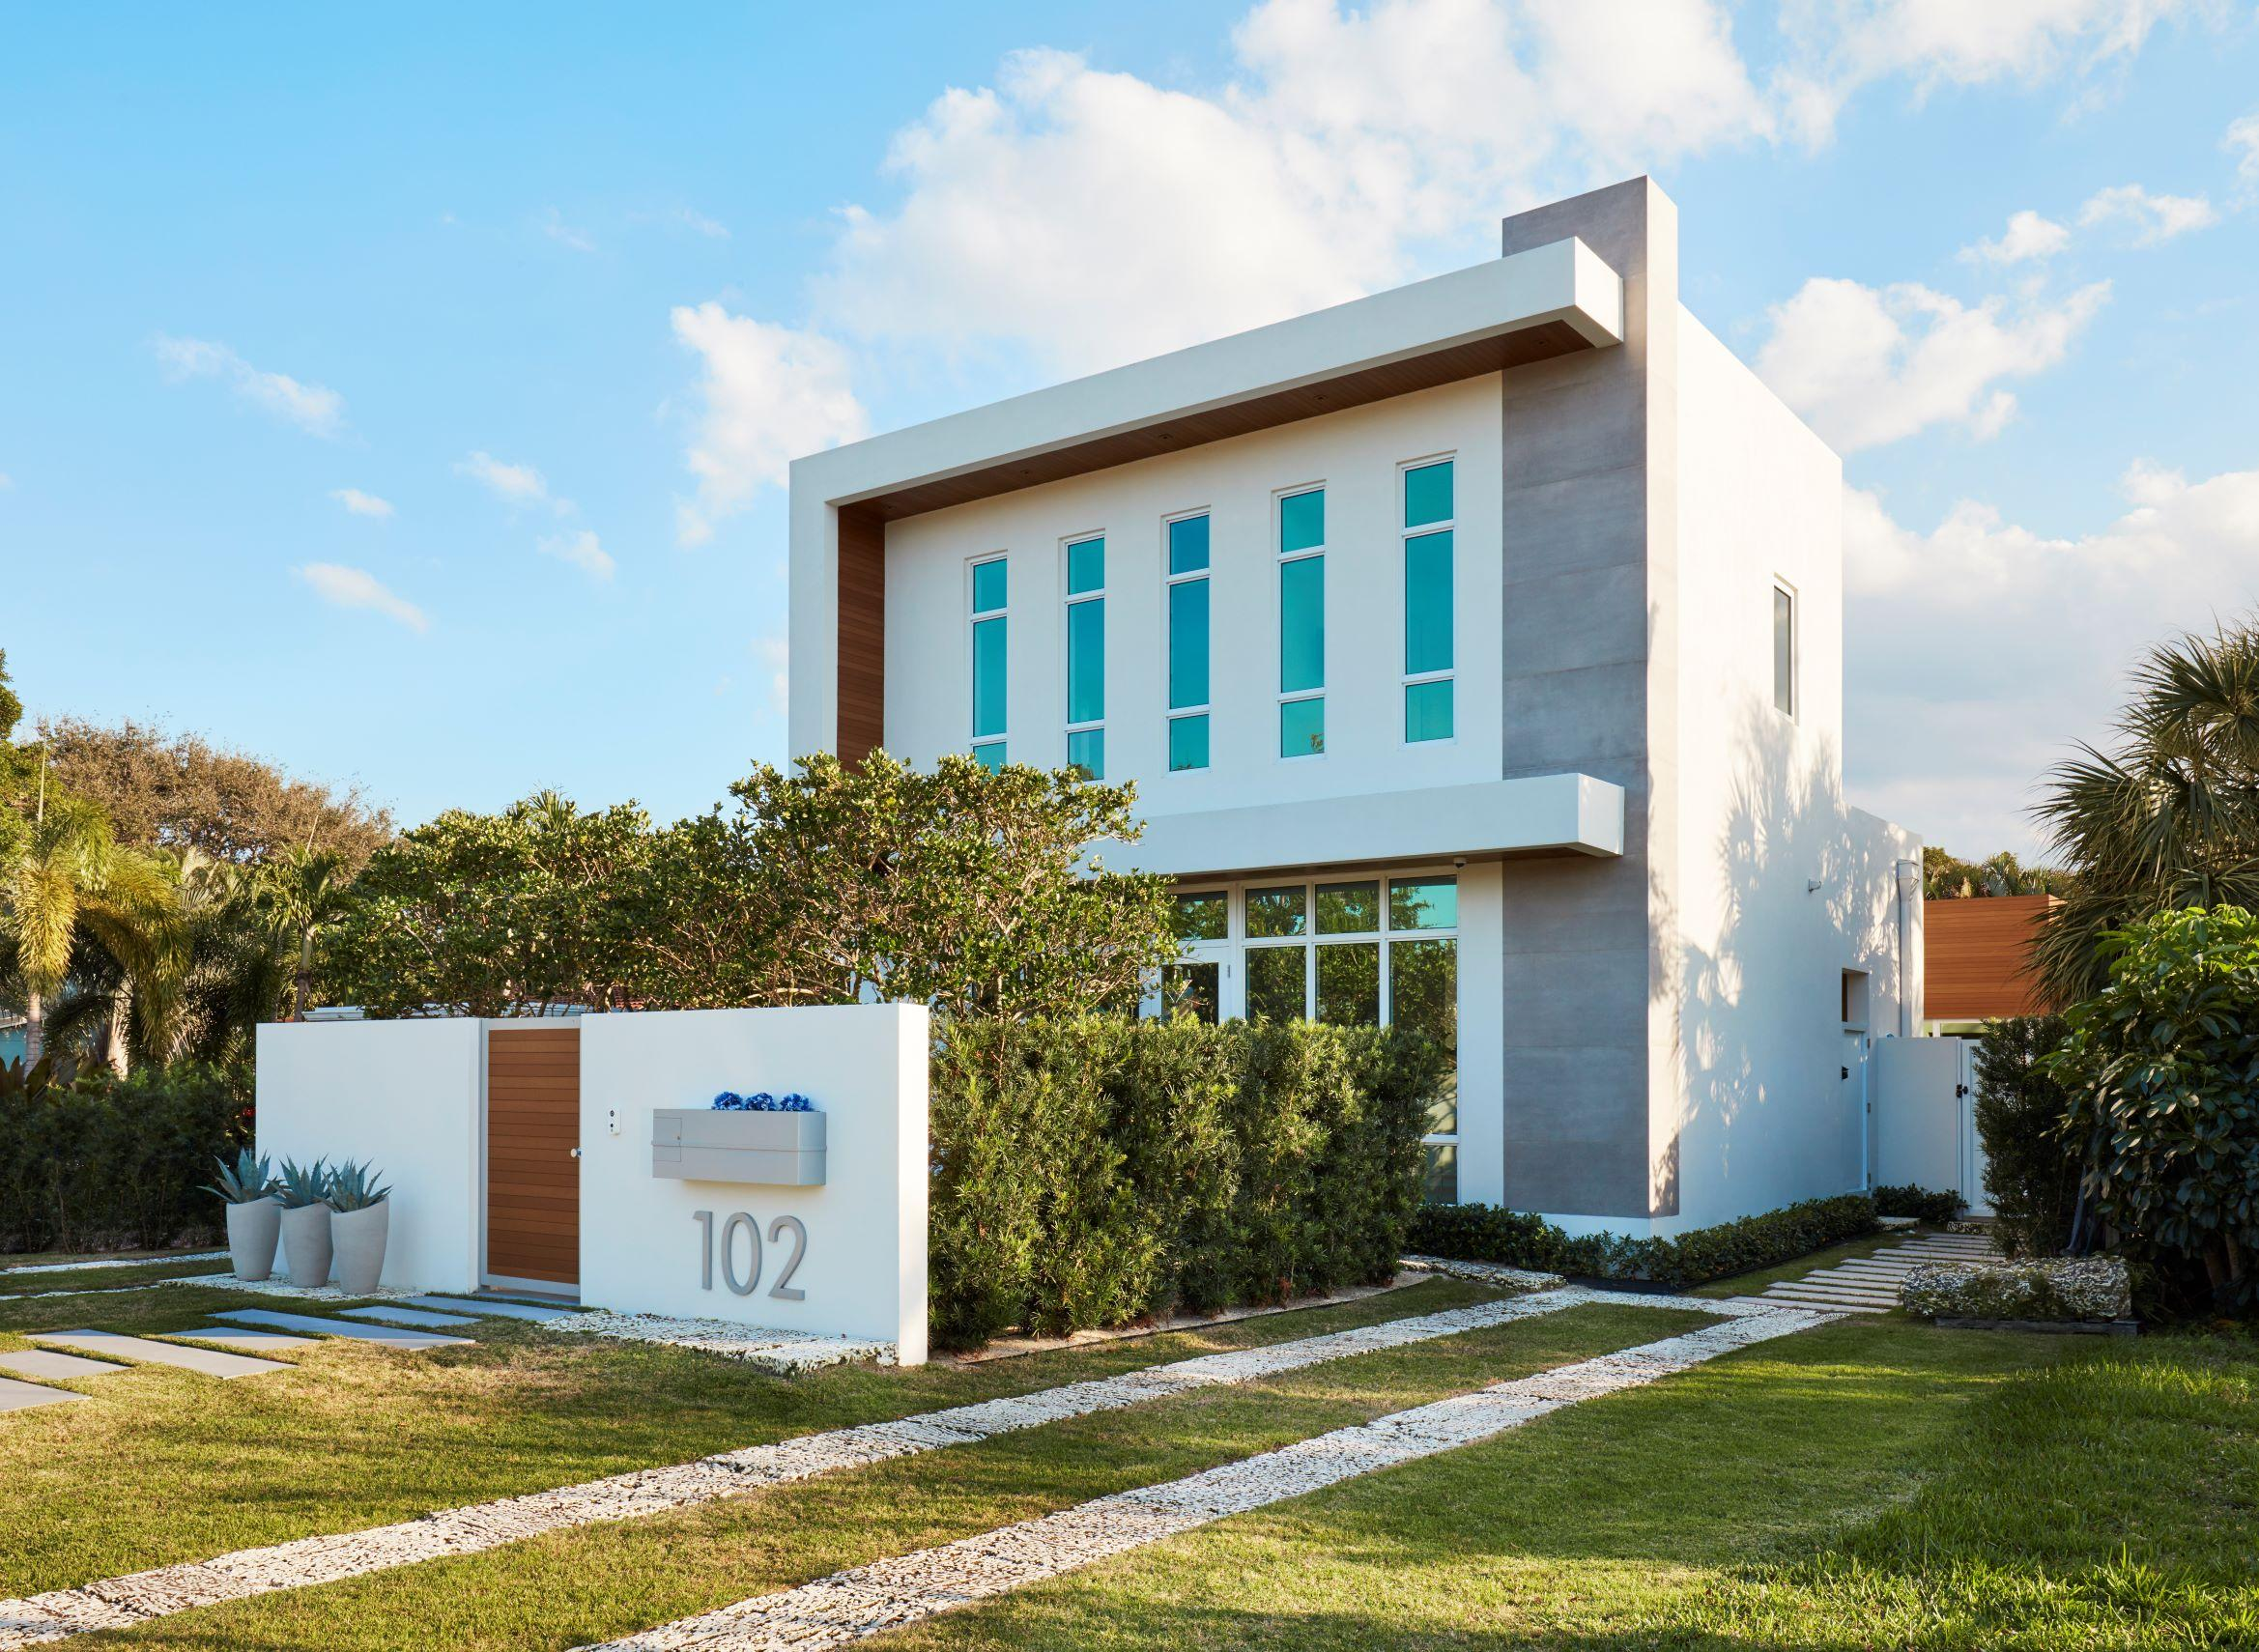 102 11th Street, Delray Beach, Florida 33444, 4 Bedrooms Bedrooms, ,3.1 BathroomsBathrooms,Single Family Detached,For Sale,11th,RX-10494916